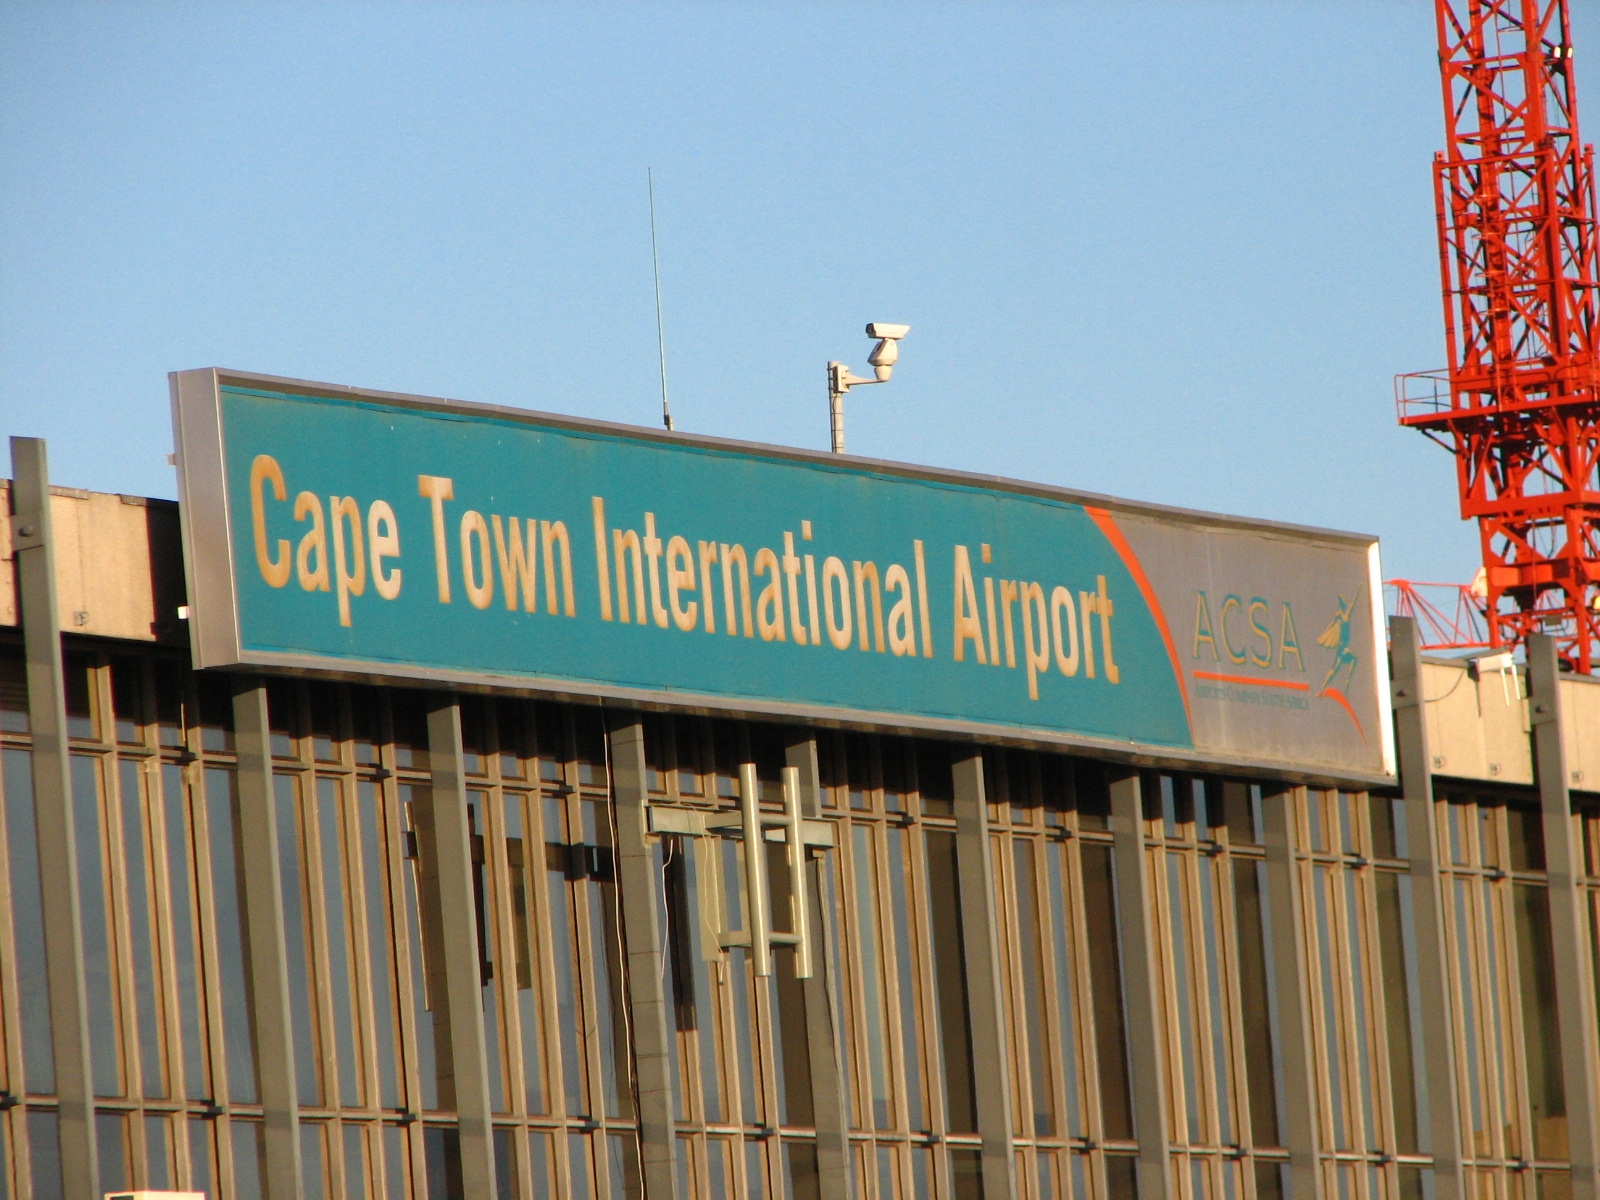 Cpt Is 10th Best Airport In The World